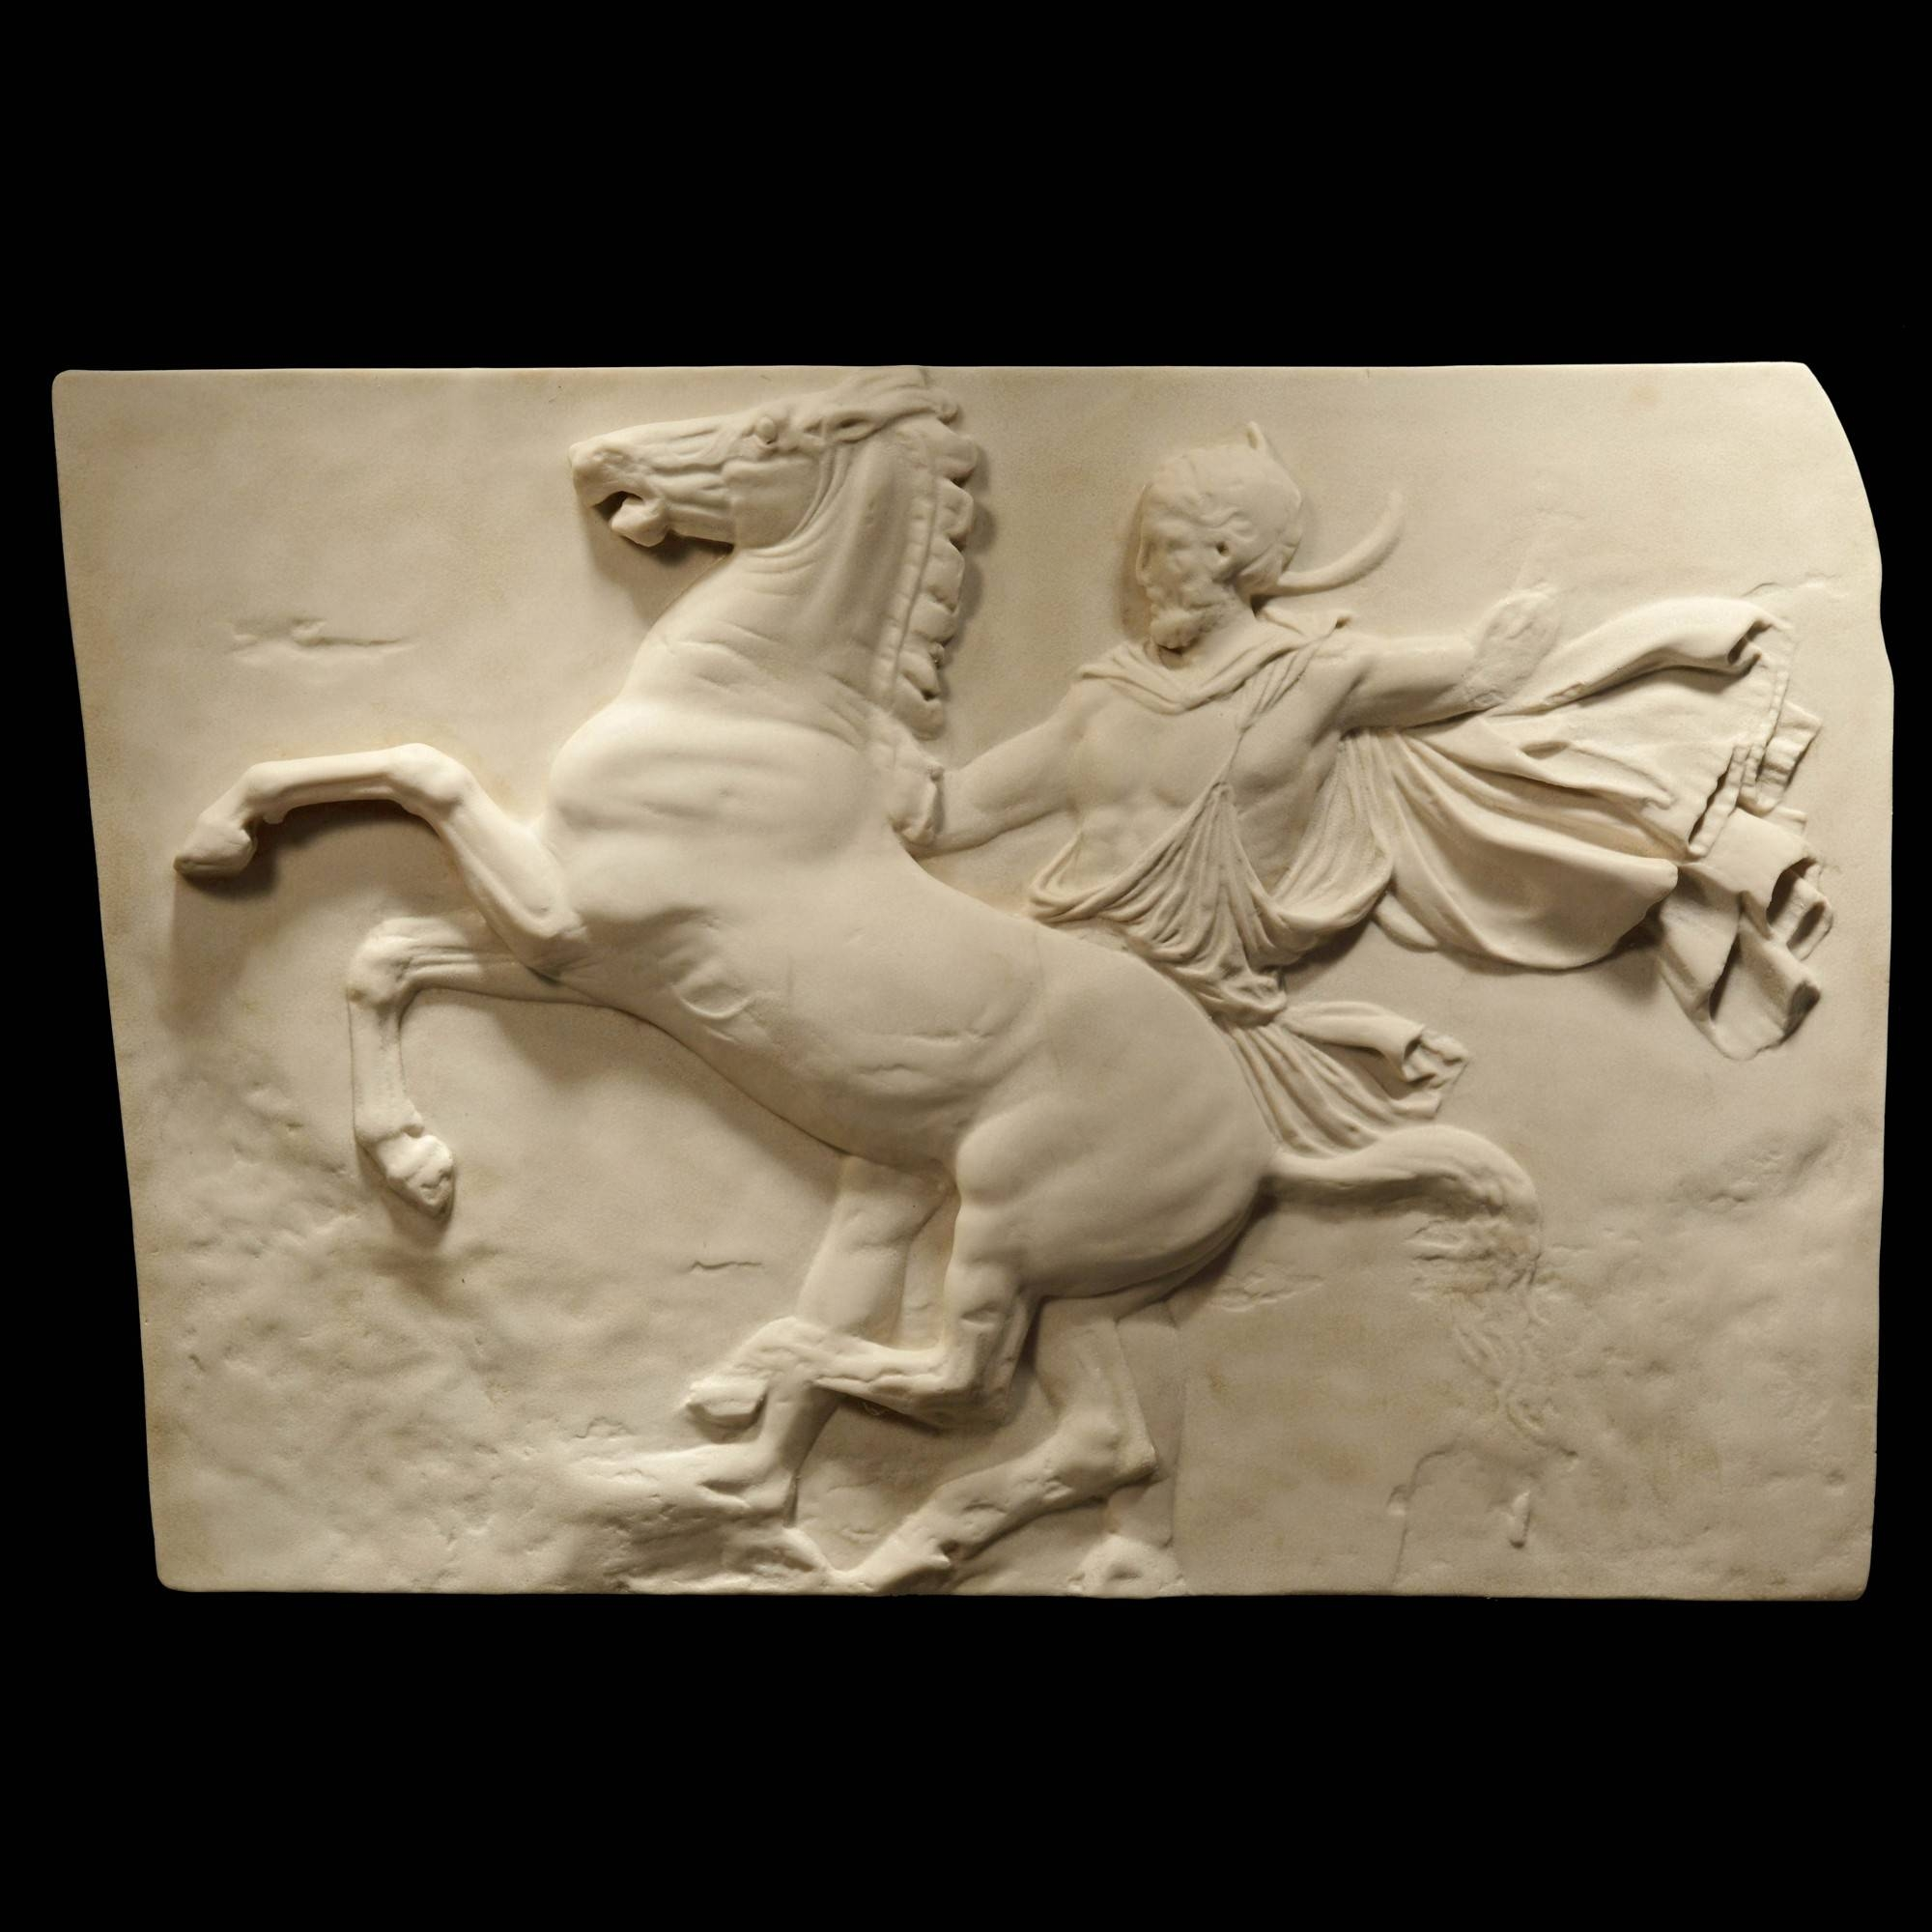 Lone Horseman Parthenon Marbles – Ancient Greek Wall Relief Plaque Within Most Up To Date Greek Wall Art (View 13 of 20)